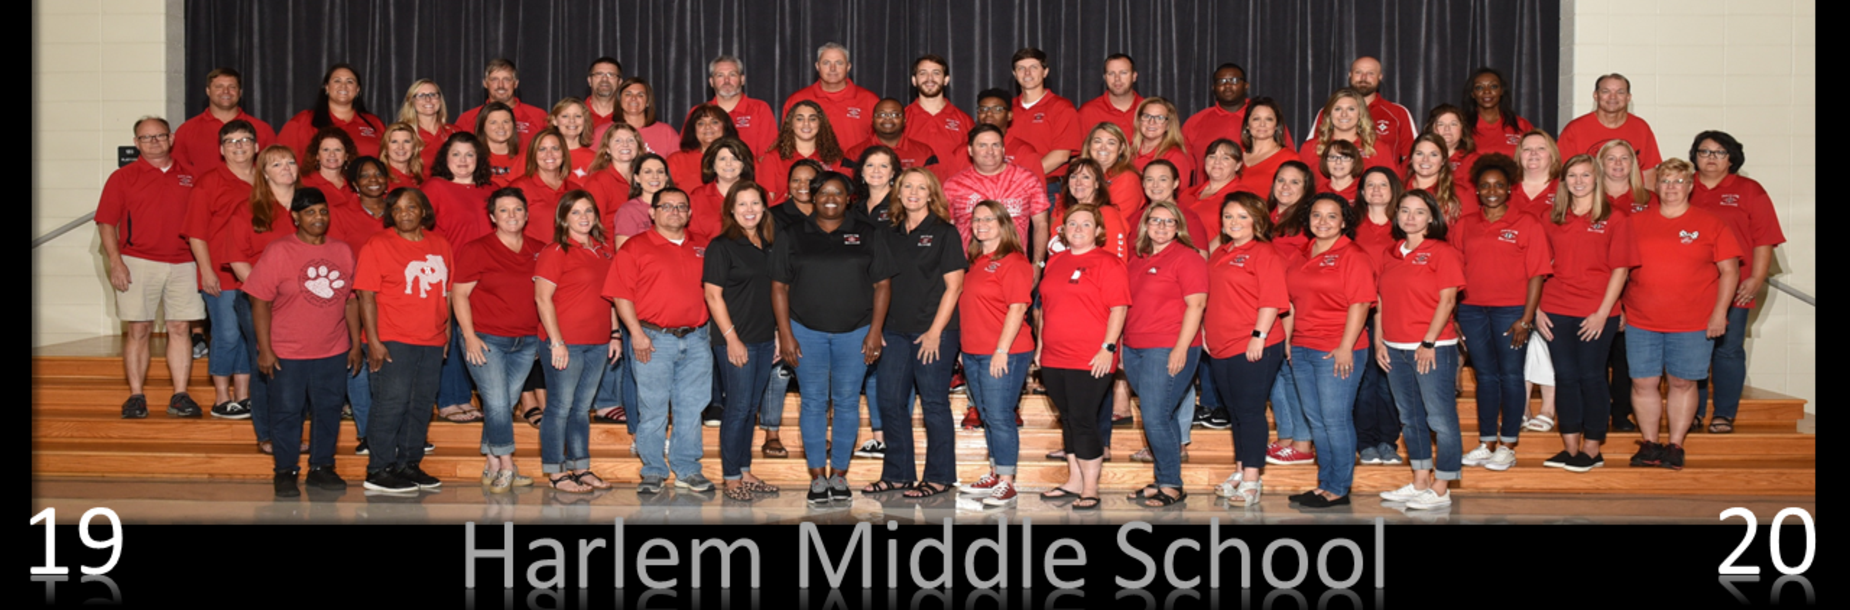 Faculty & Staff 19-20